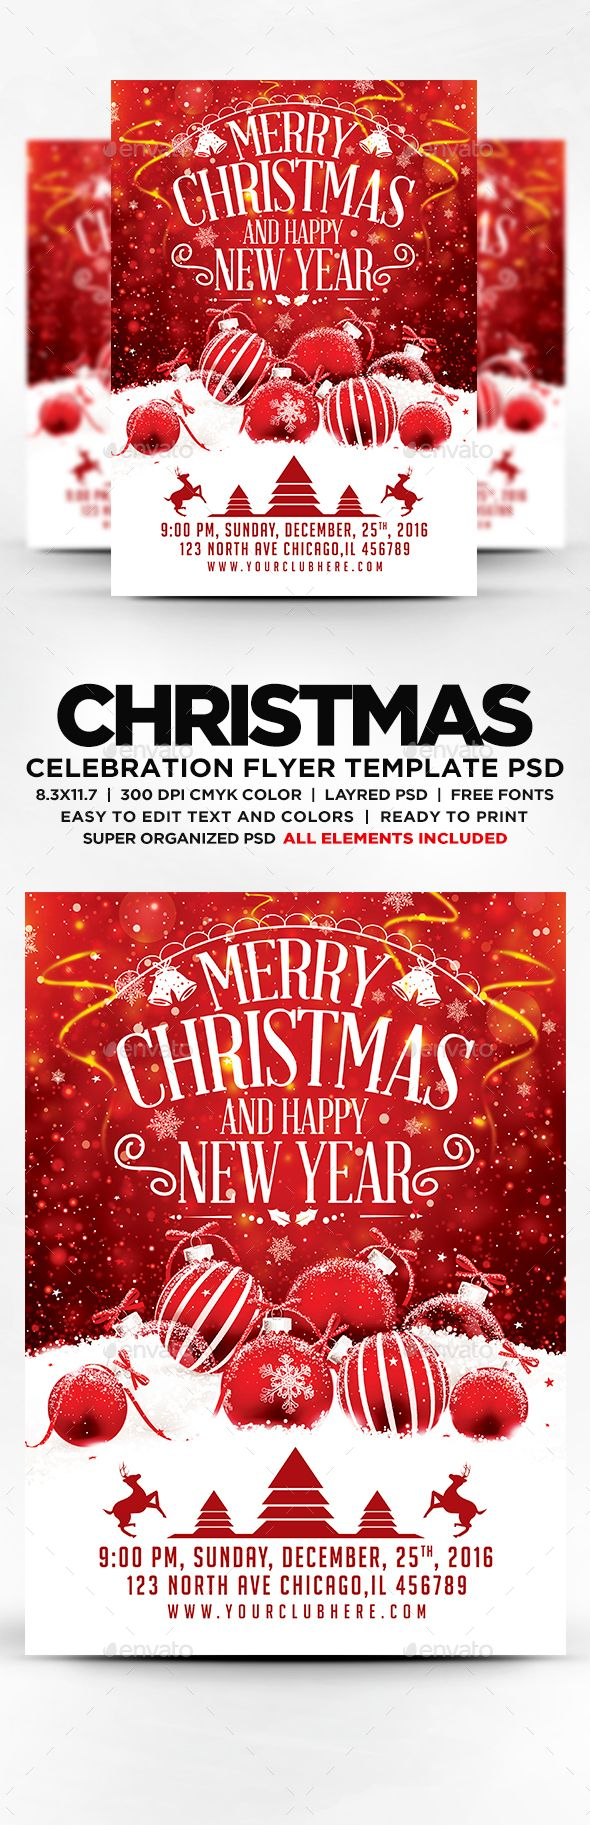 merry christmas and happy new year flyer template psd